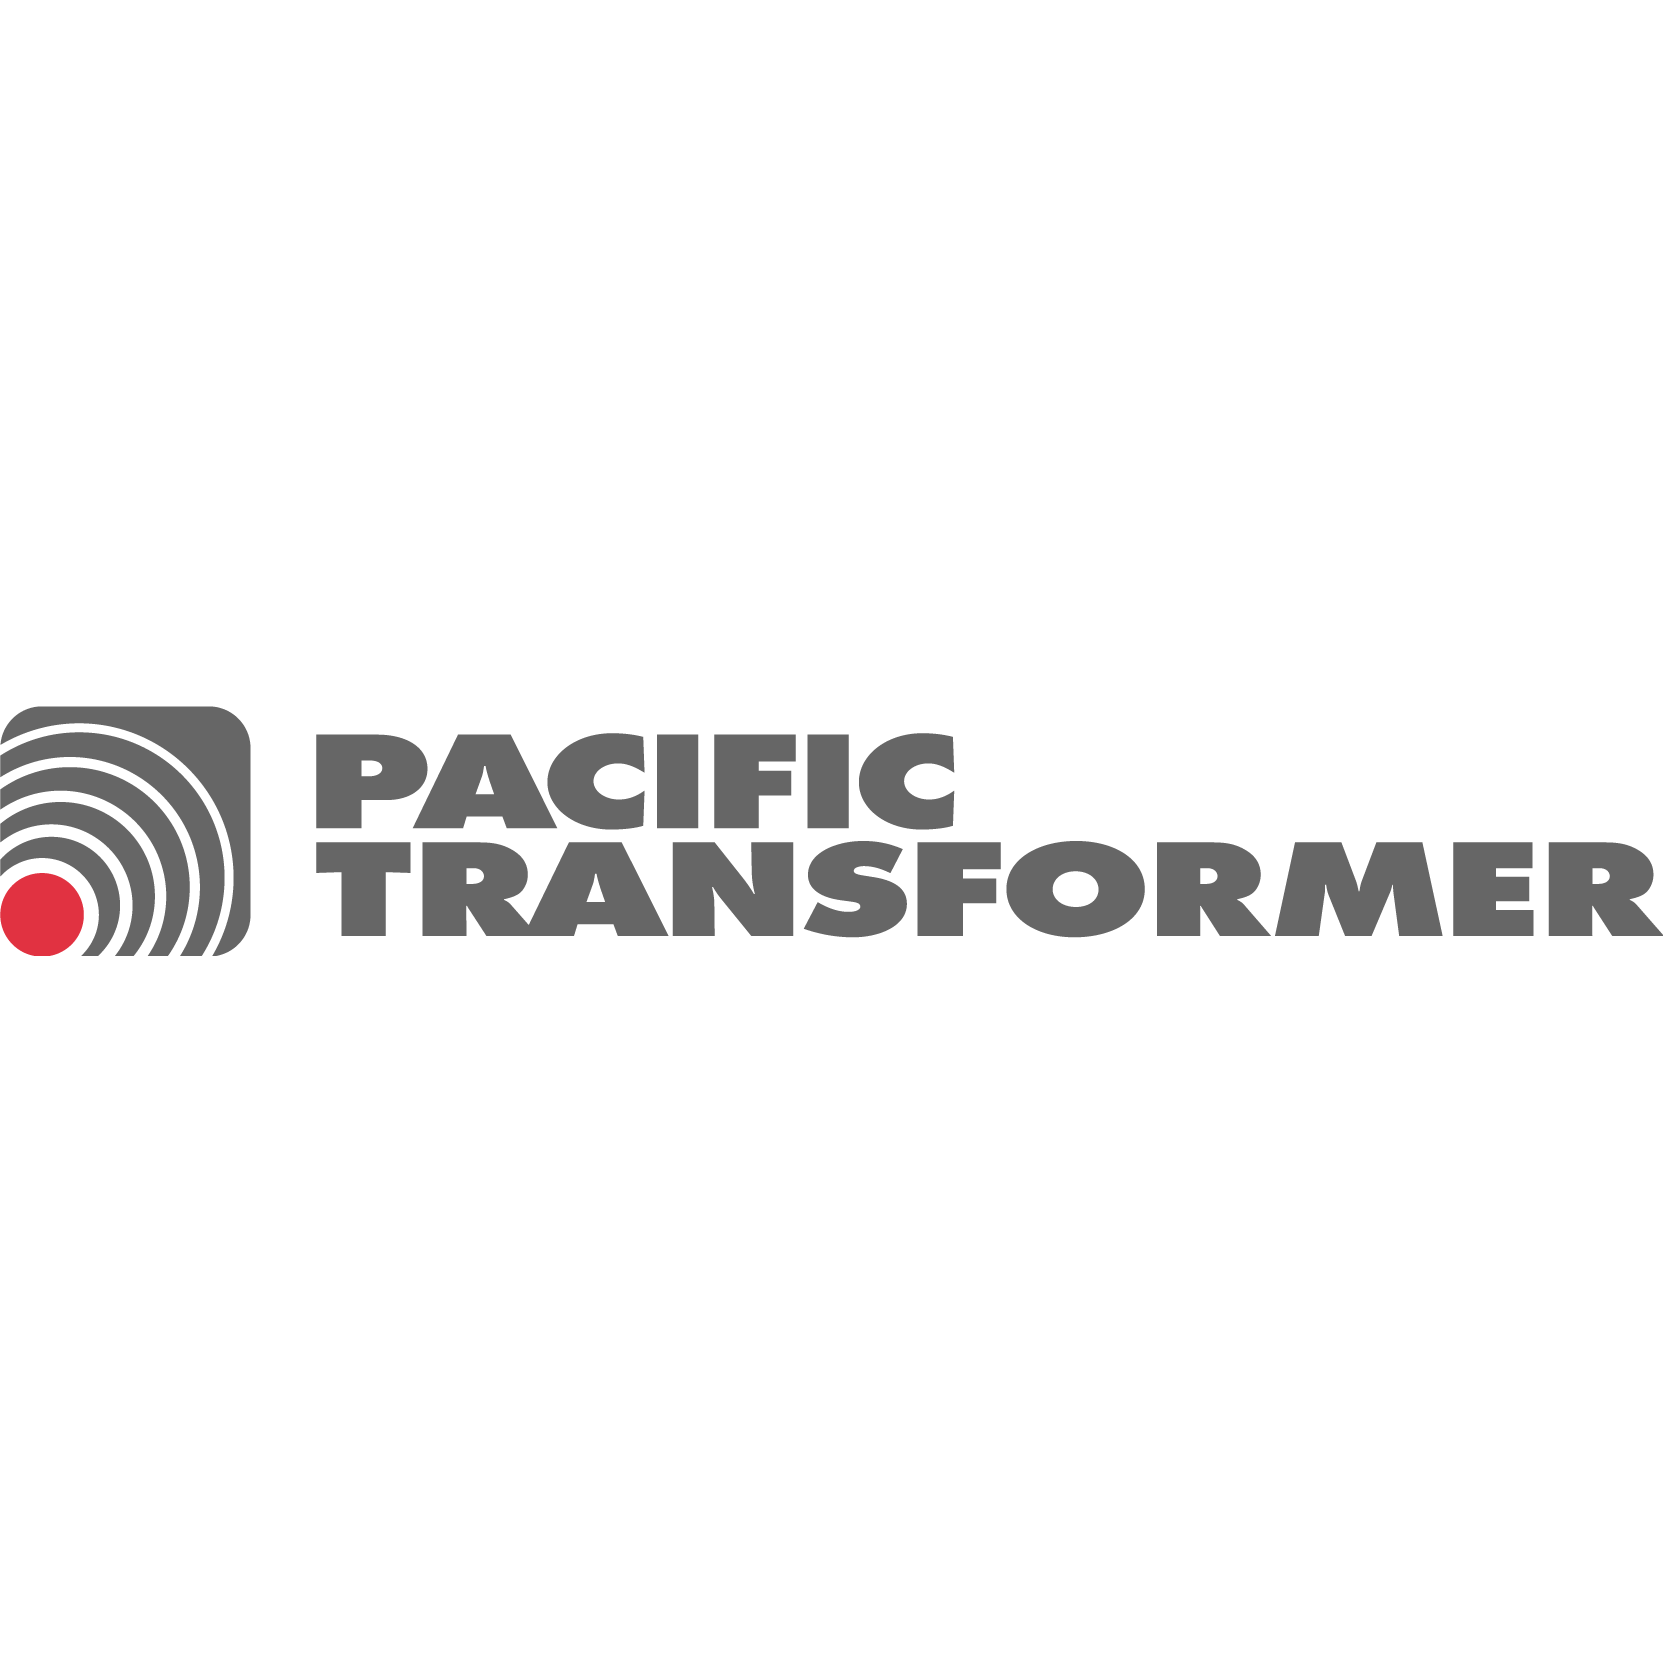 Pacific Transformer - Anaheim, CA - Computer & Electronic Stores